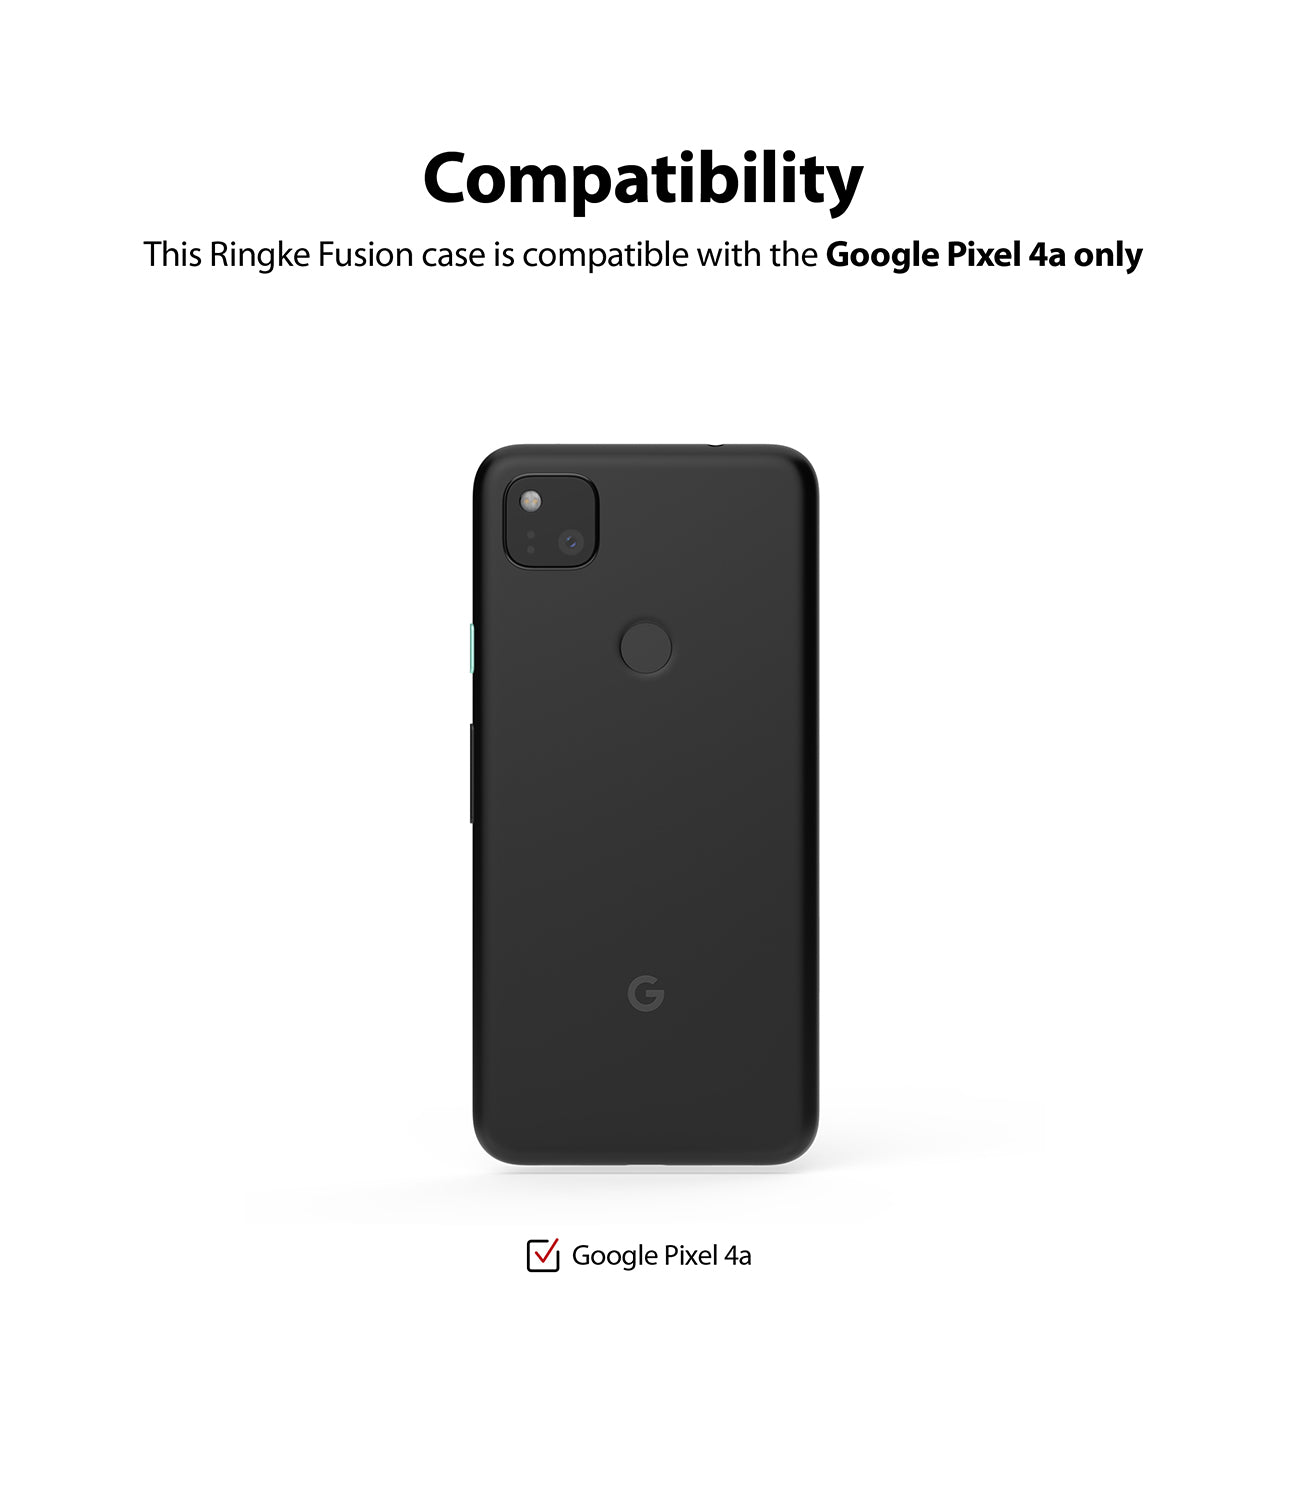 compatible with google pixel 4a